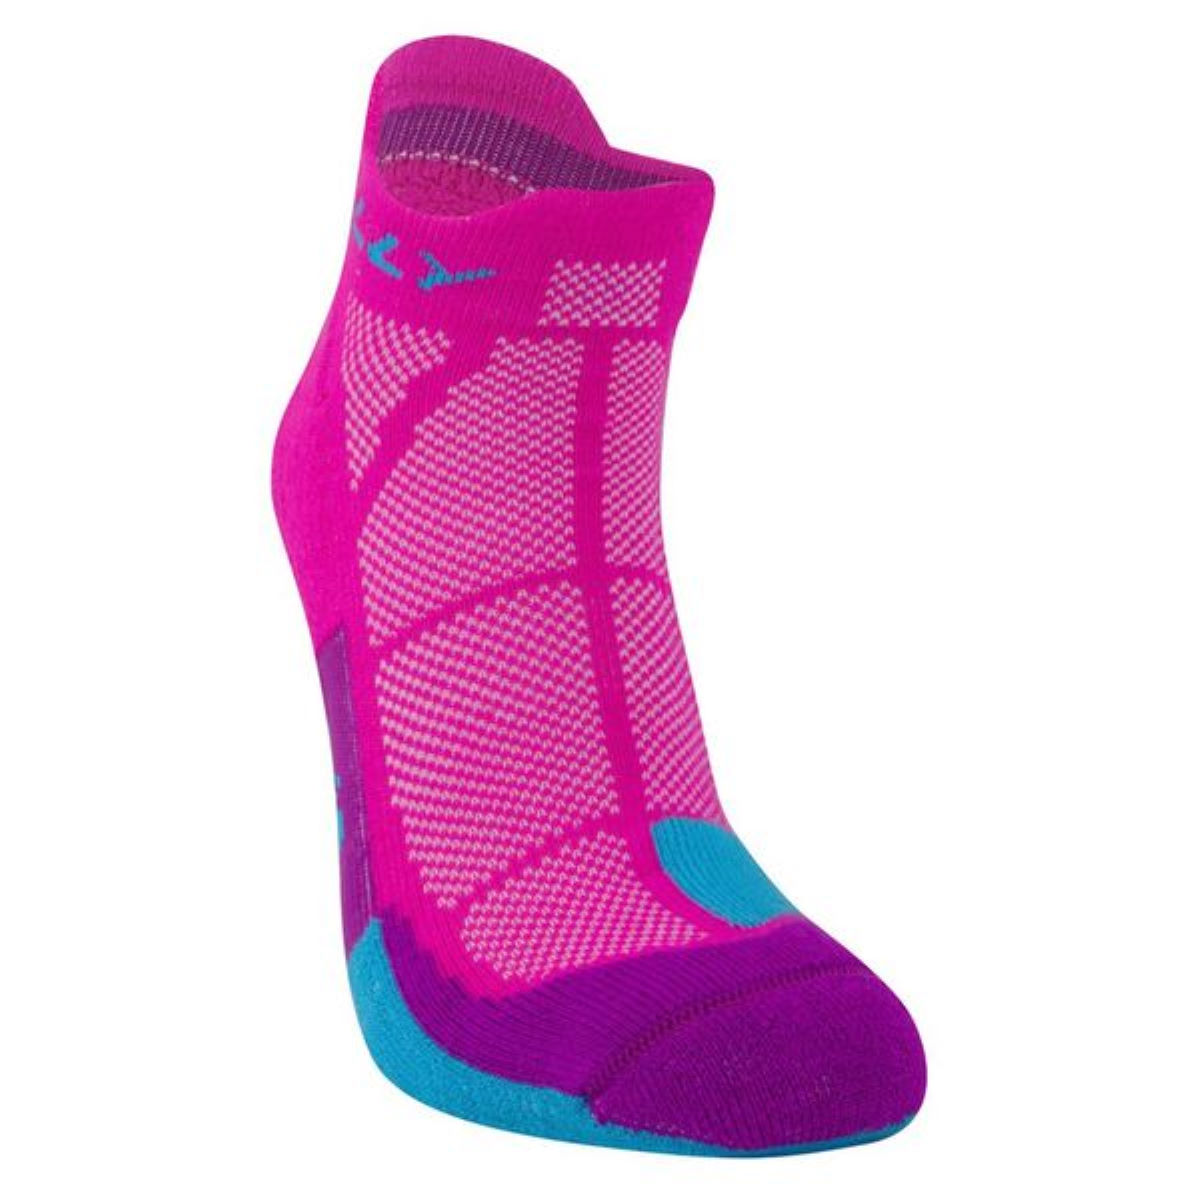 Calcetines Hilly Cushion para mujer (caña baja) - Calcetines